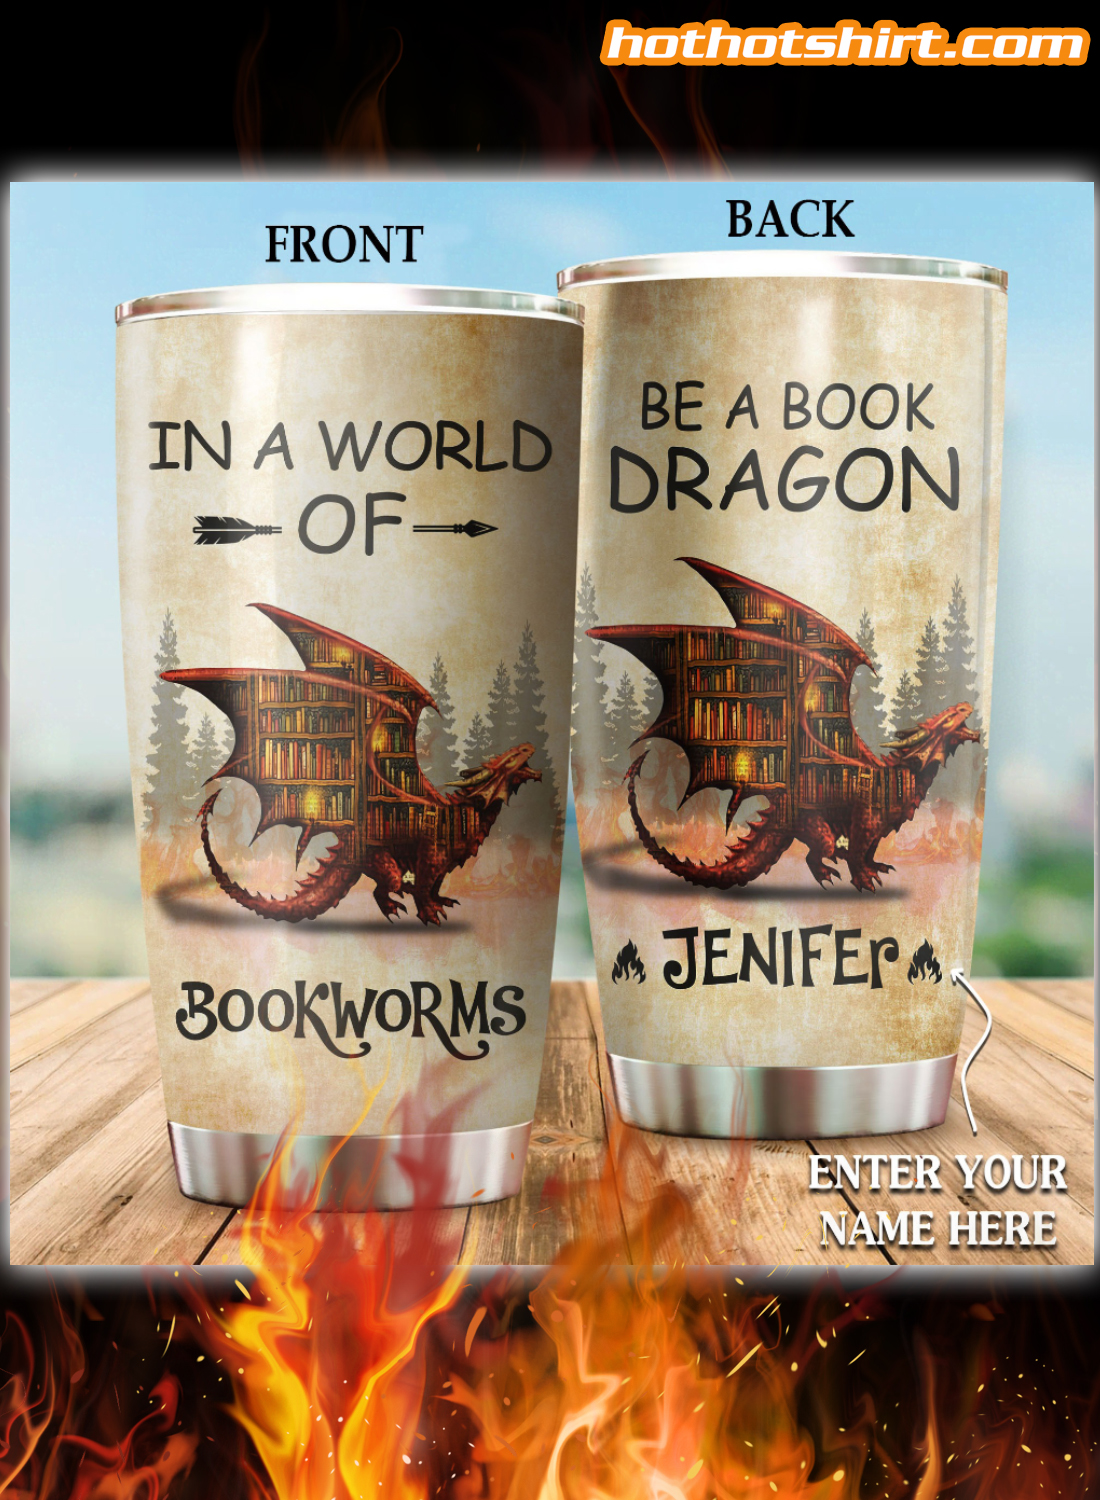 Personalized In a world of bookworms be a book dragon tumbler